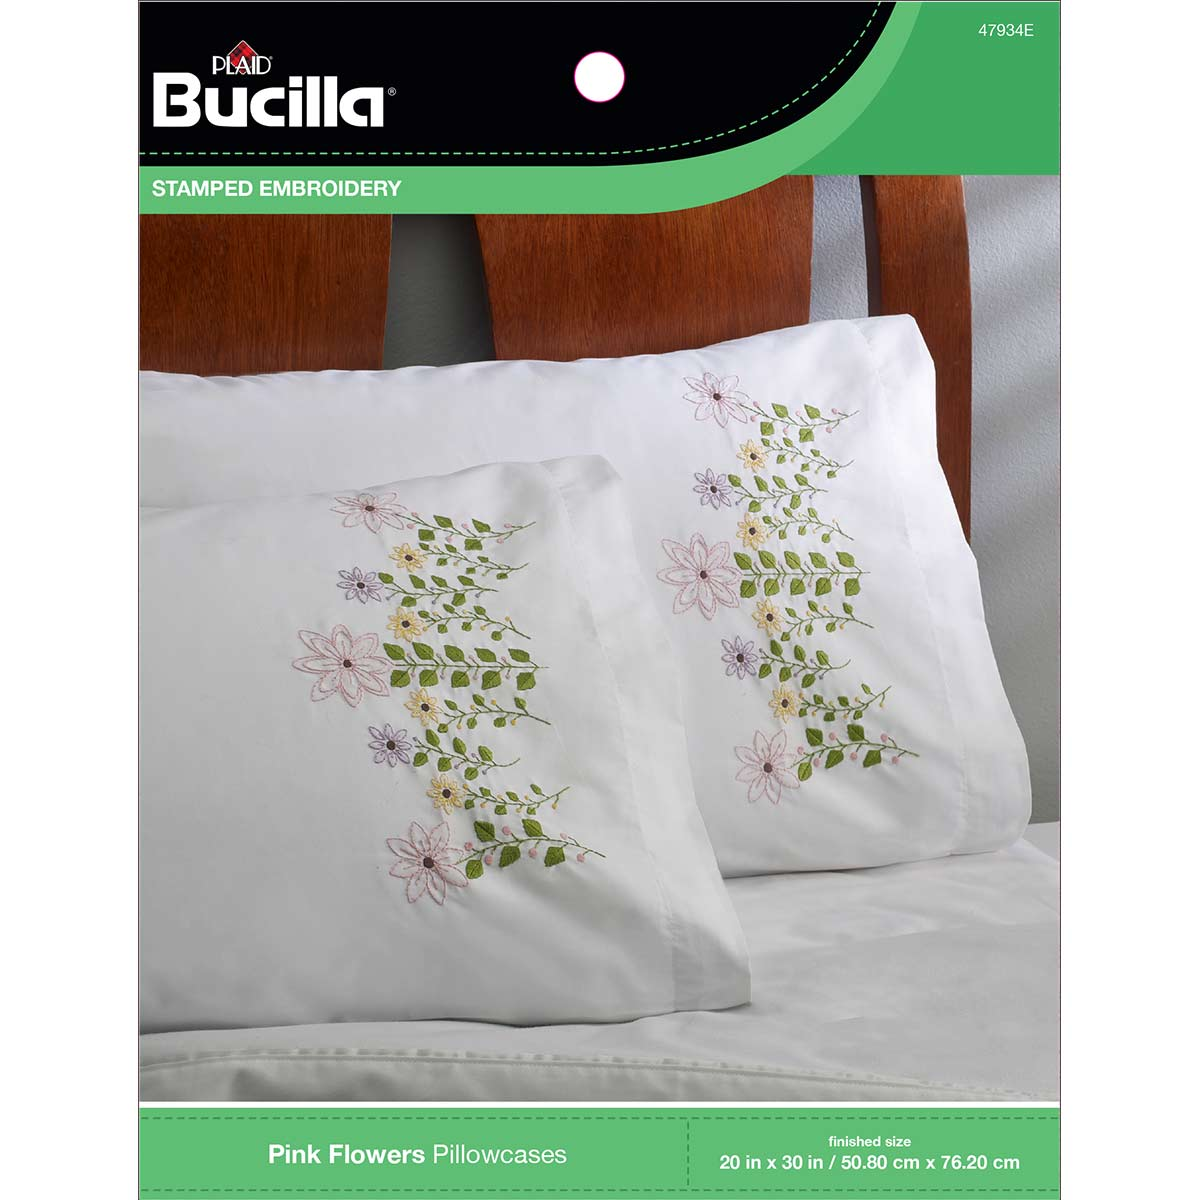 bucilla stamped cross stitch embroidery pillowcase pairs pink flowers 47934e